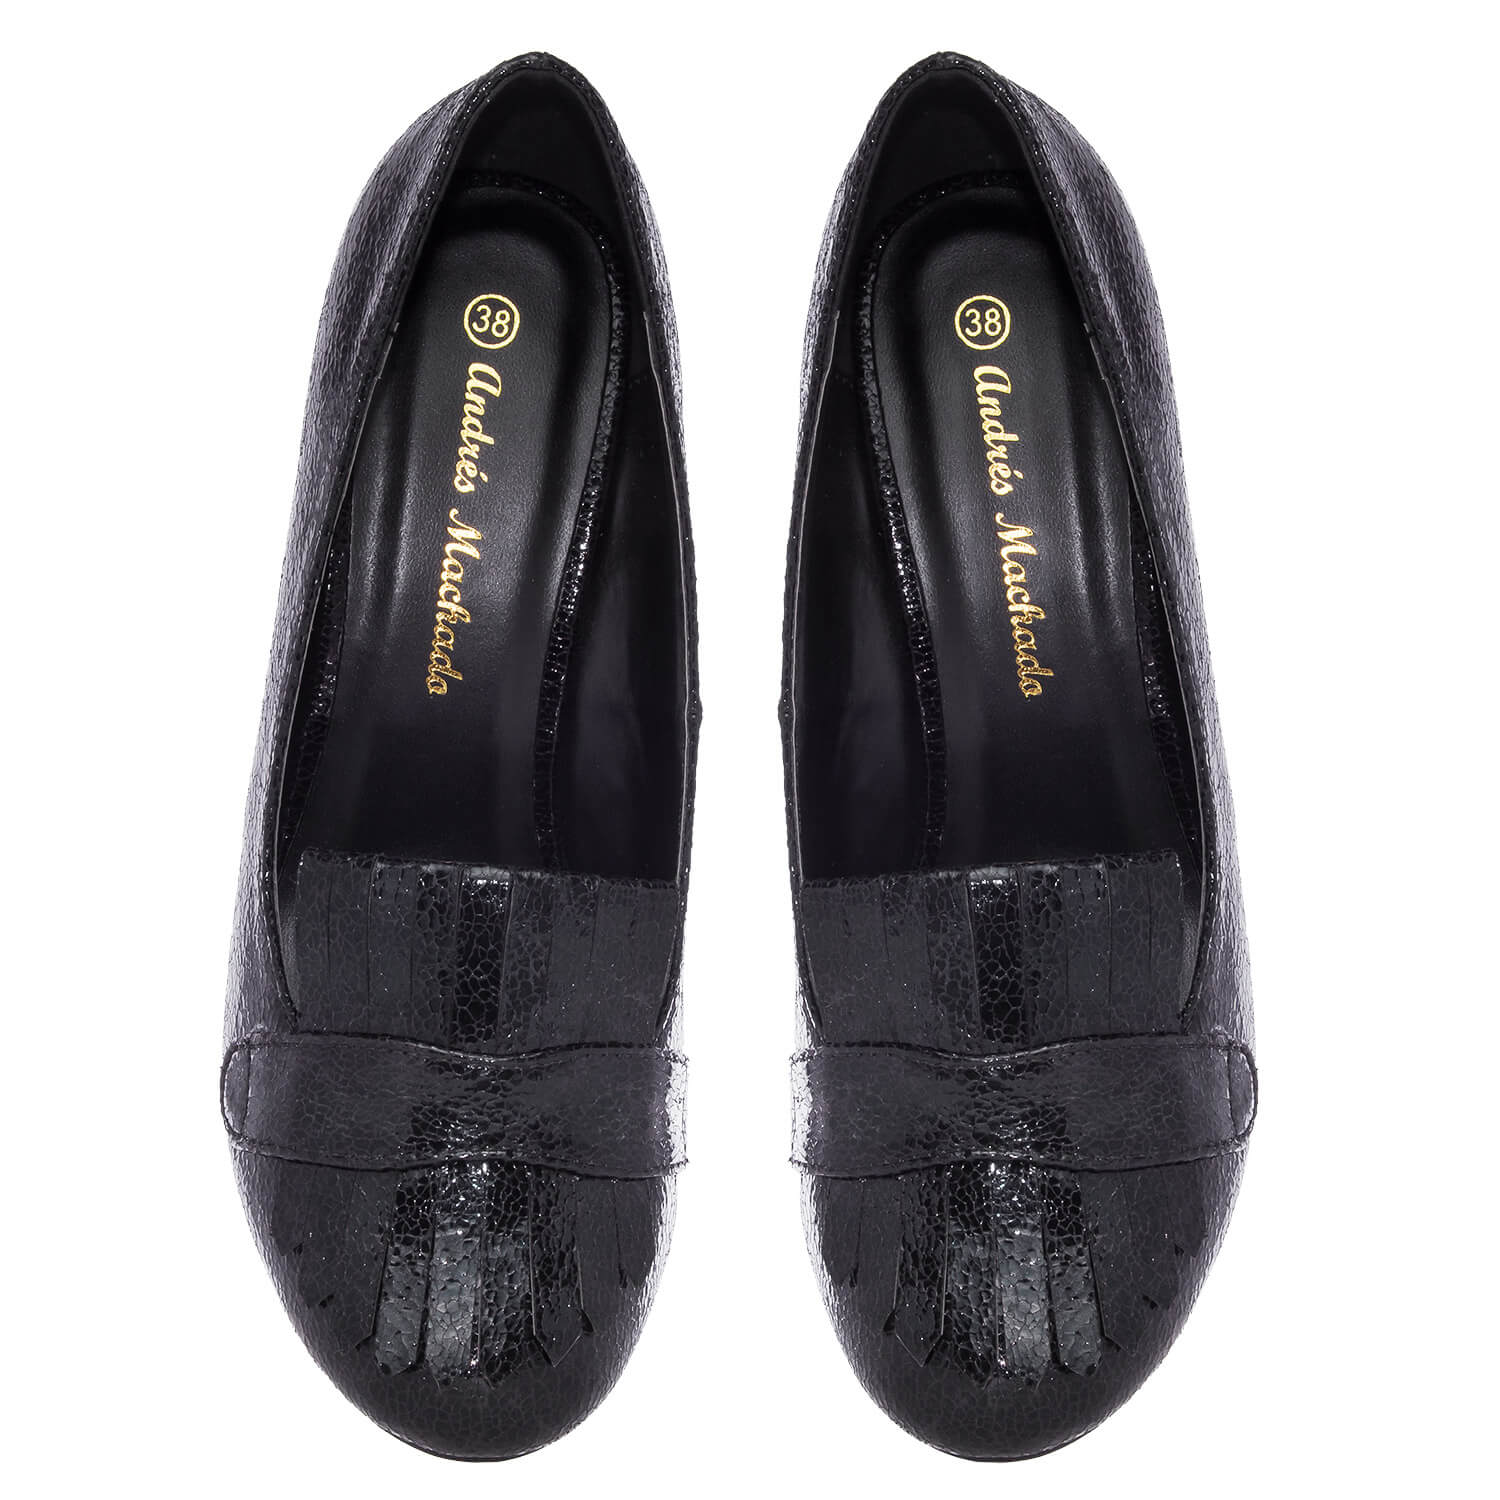 Slipper Pumps in Black Glitter